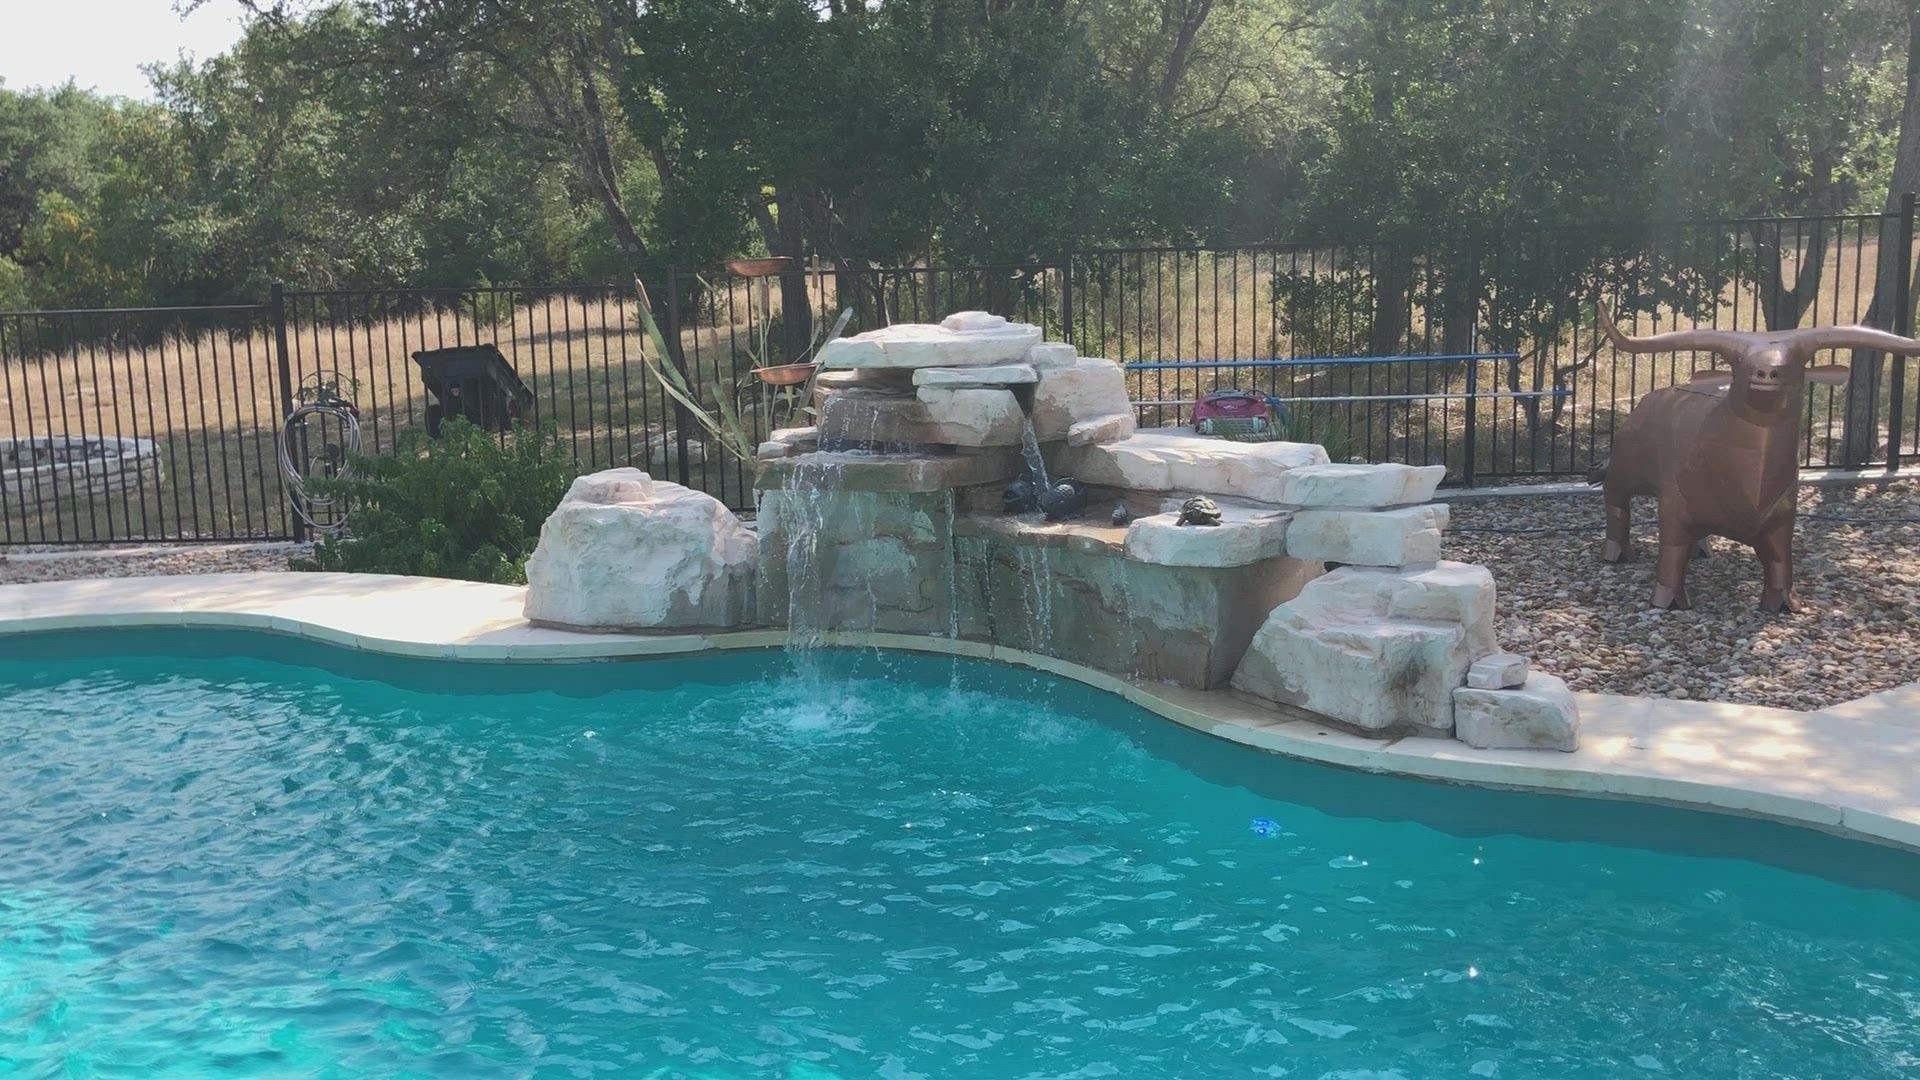 This Gorgeous Texas Pool Features The Ricorock 4 Foot Double Artificial Rock Swimming Pool Waterfall Kit Credit Pool Waterfall Swimming Pool Waterfall Pool